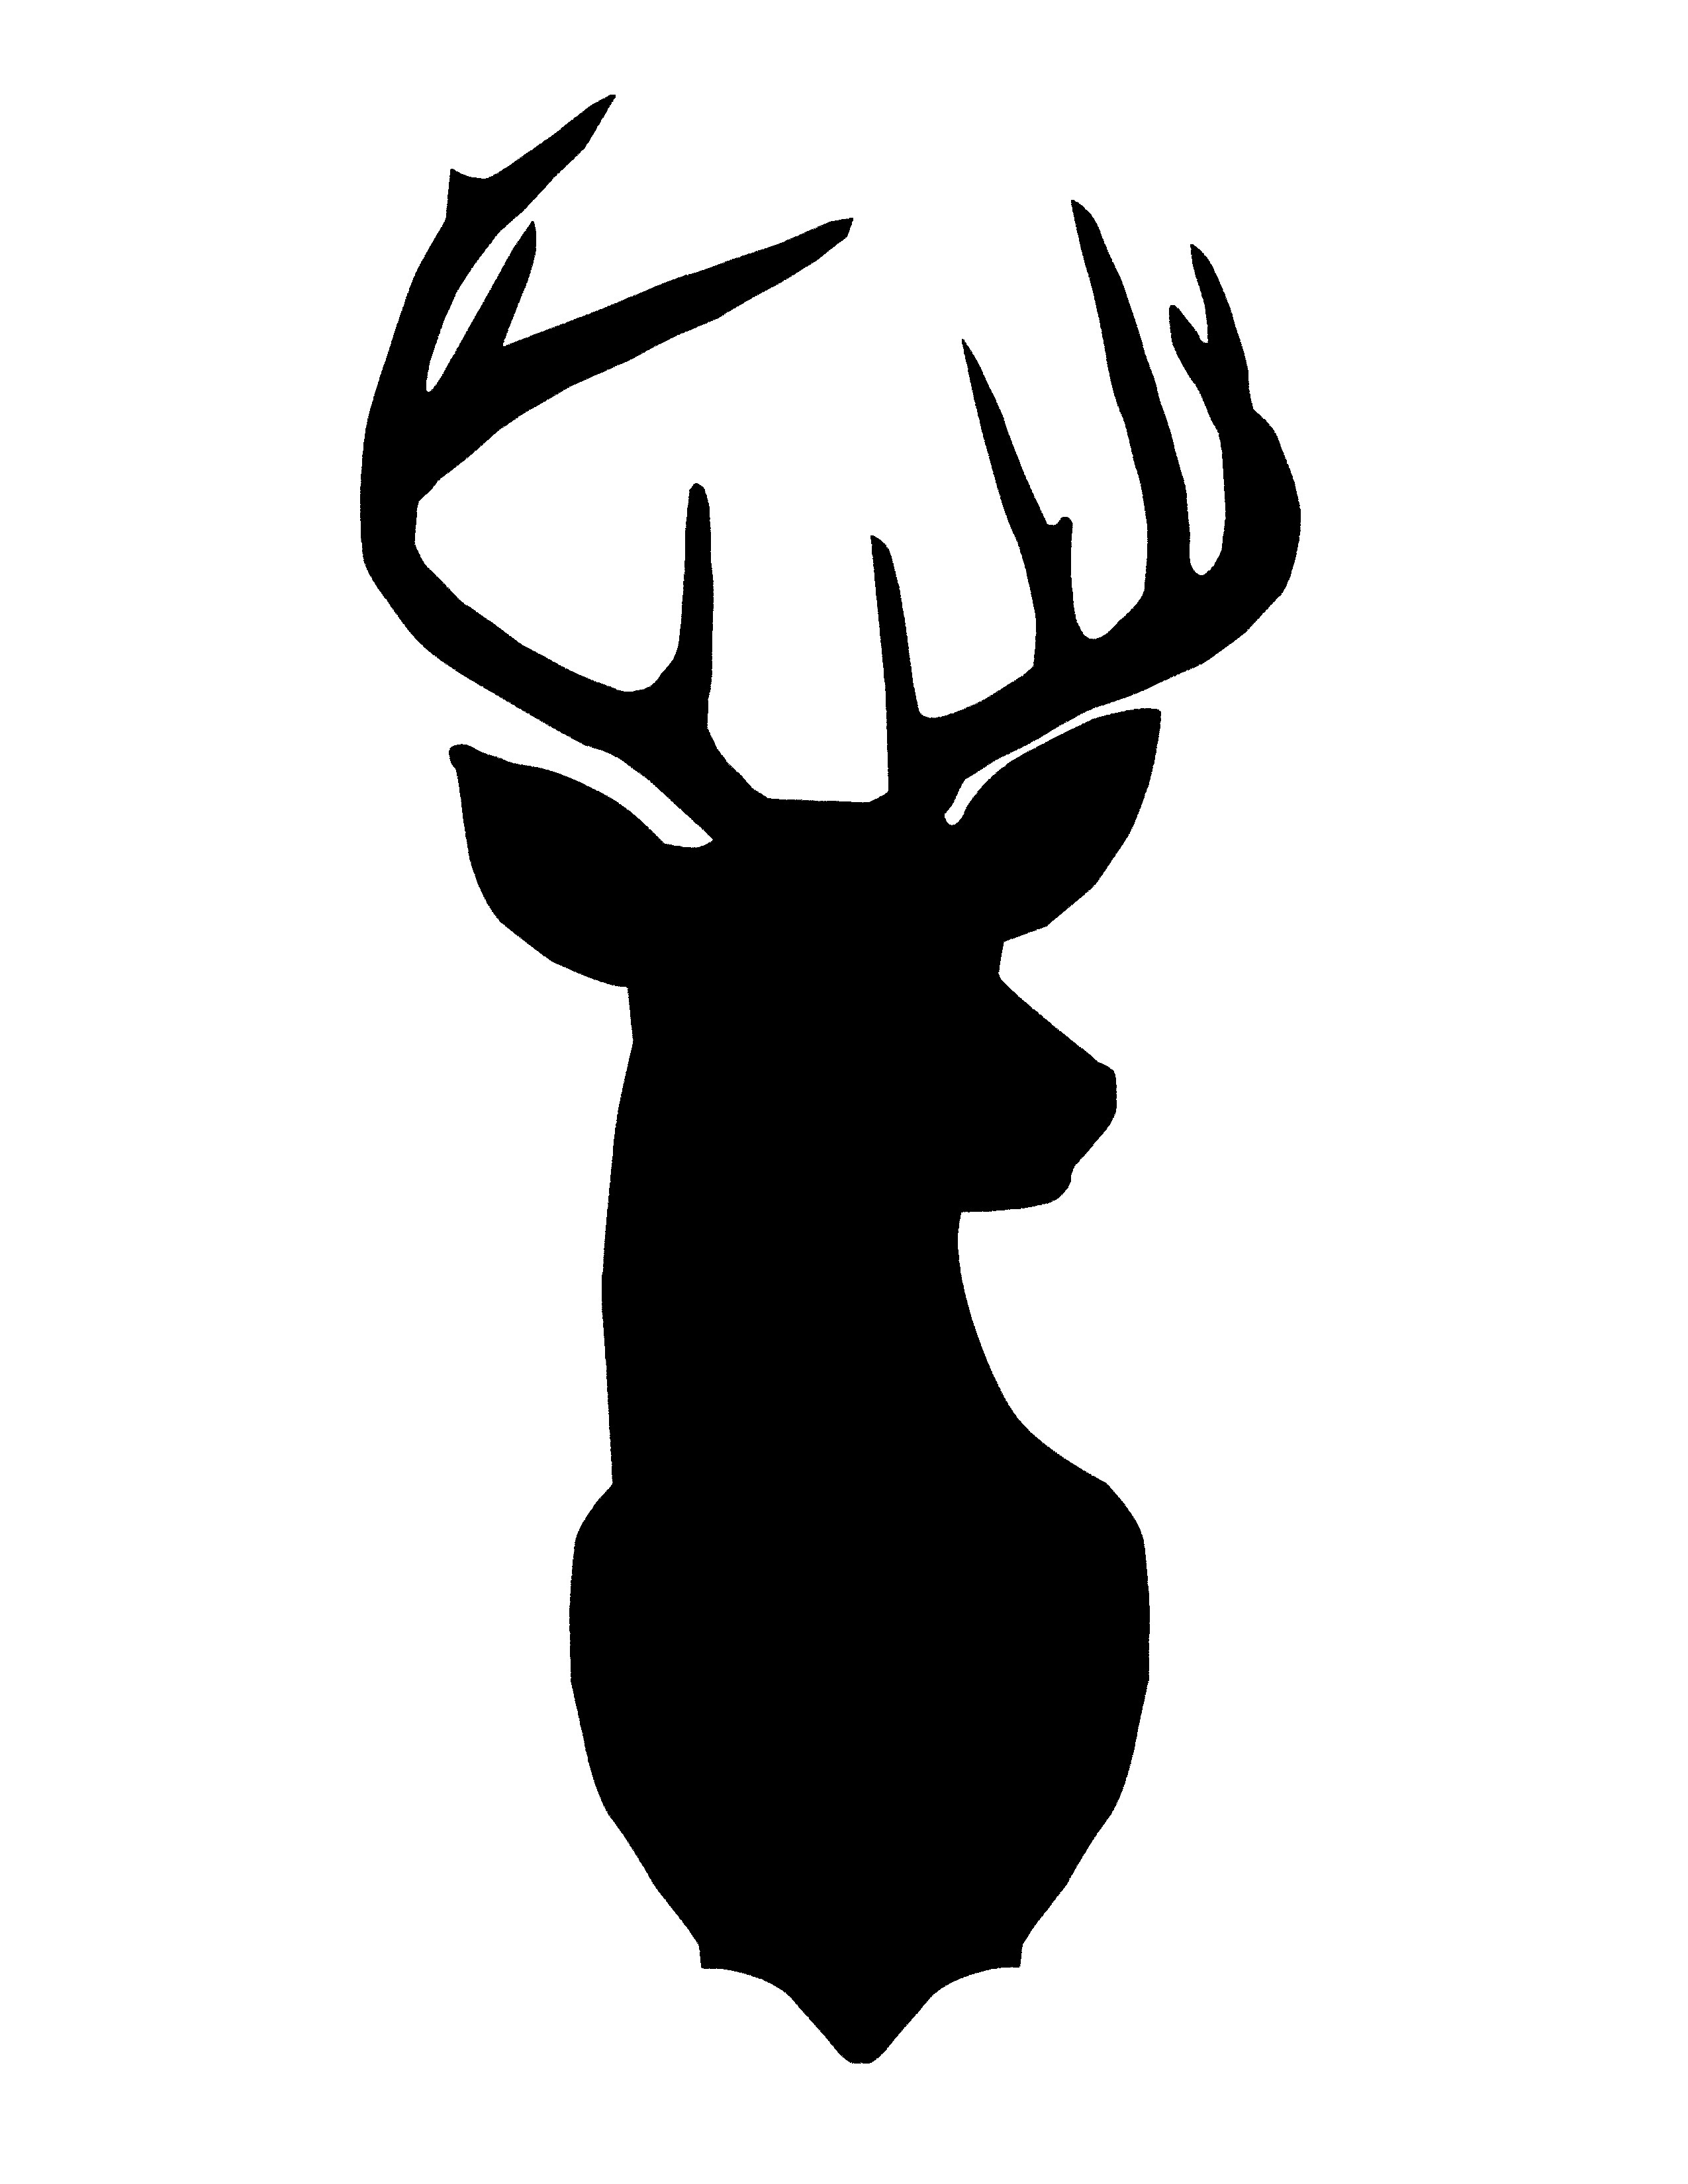 2550x3300 Black Silhouette Of Deer Antlers Vector Illustration Royalty Free